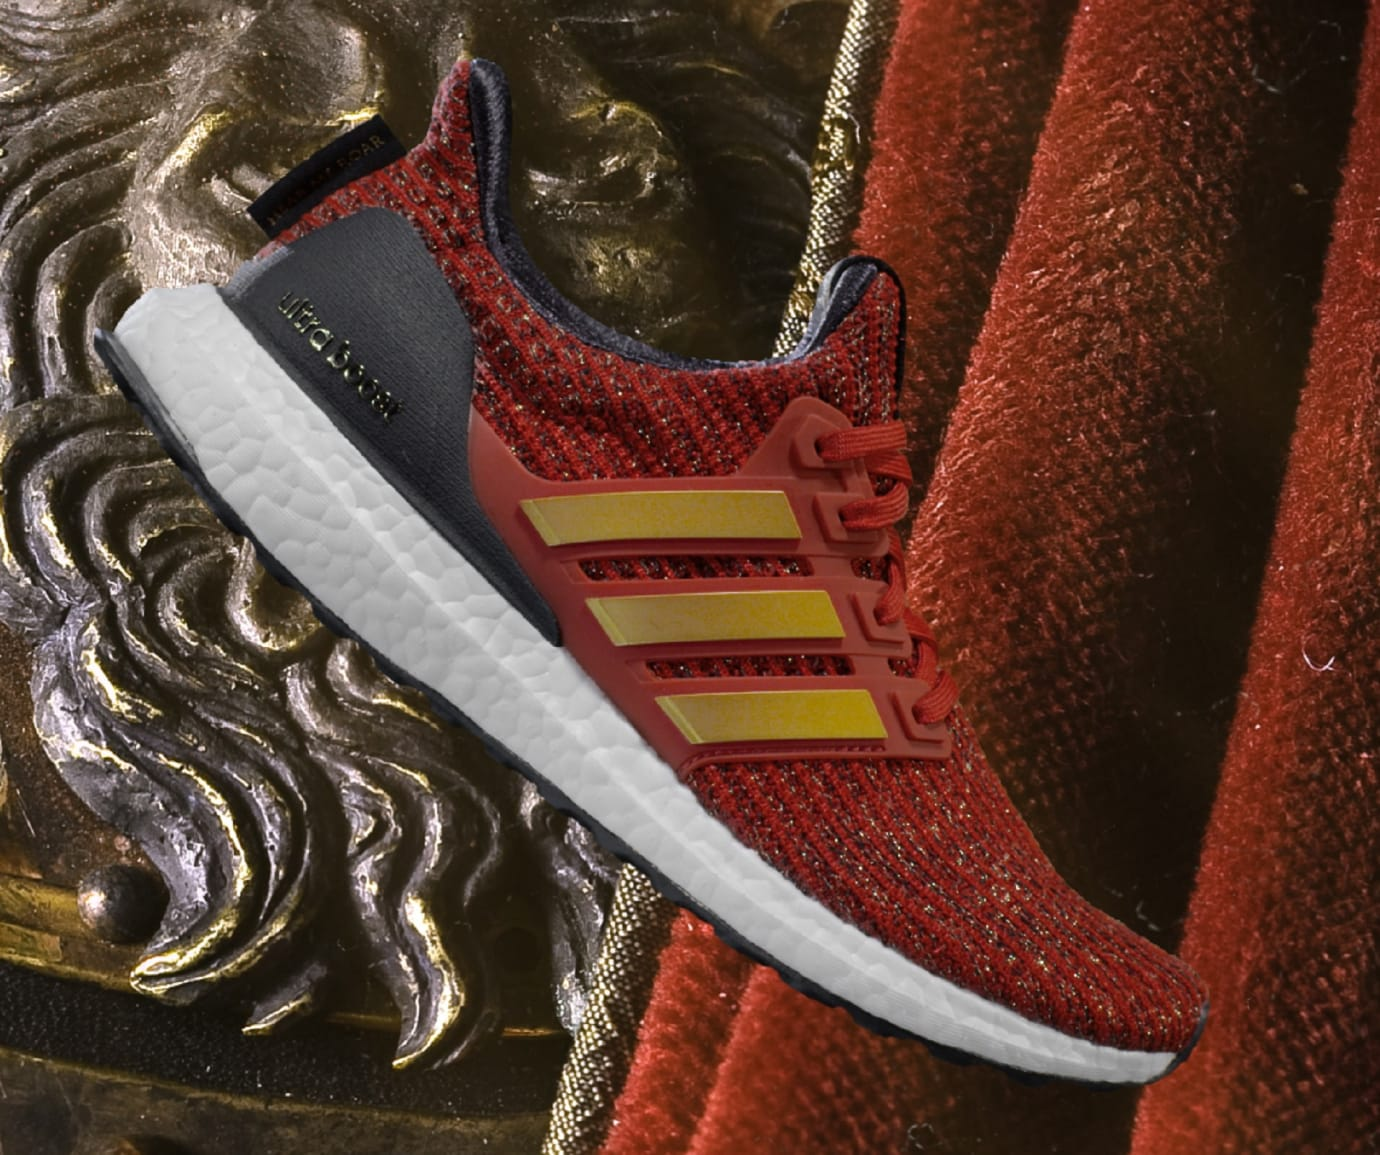 'Game of Thrones' x Adidas Ultra Boost 'House Lannister'